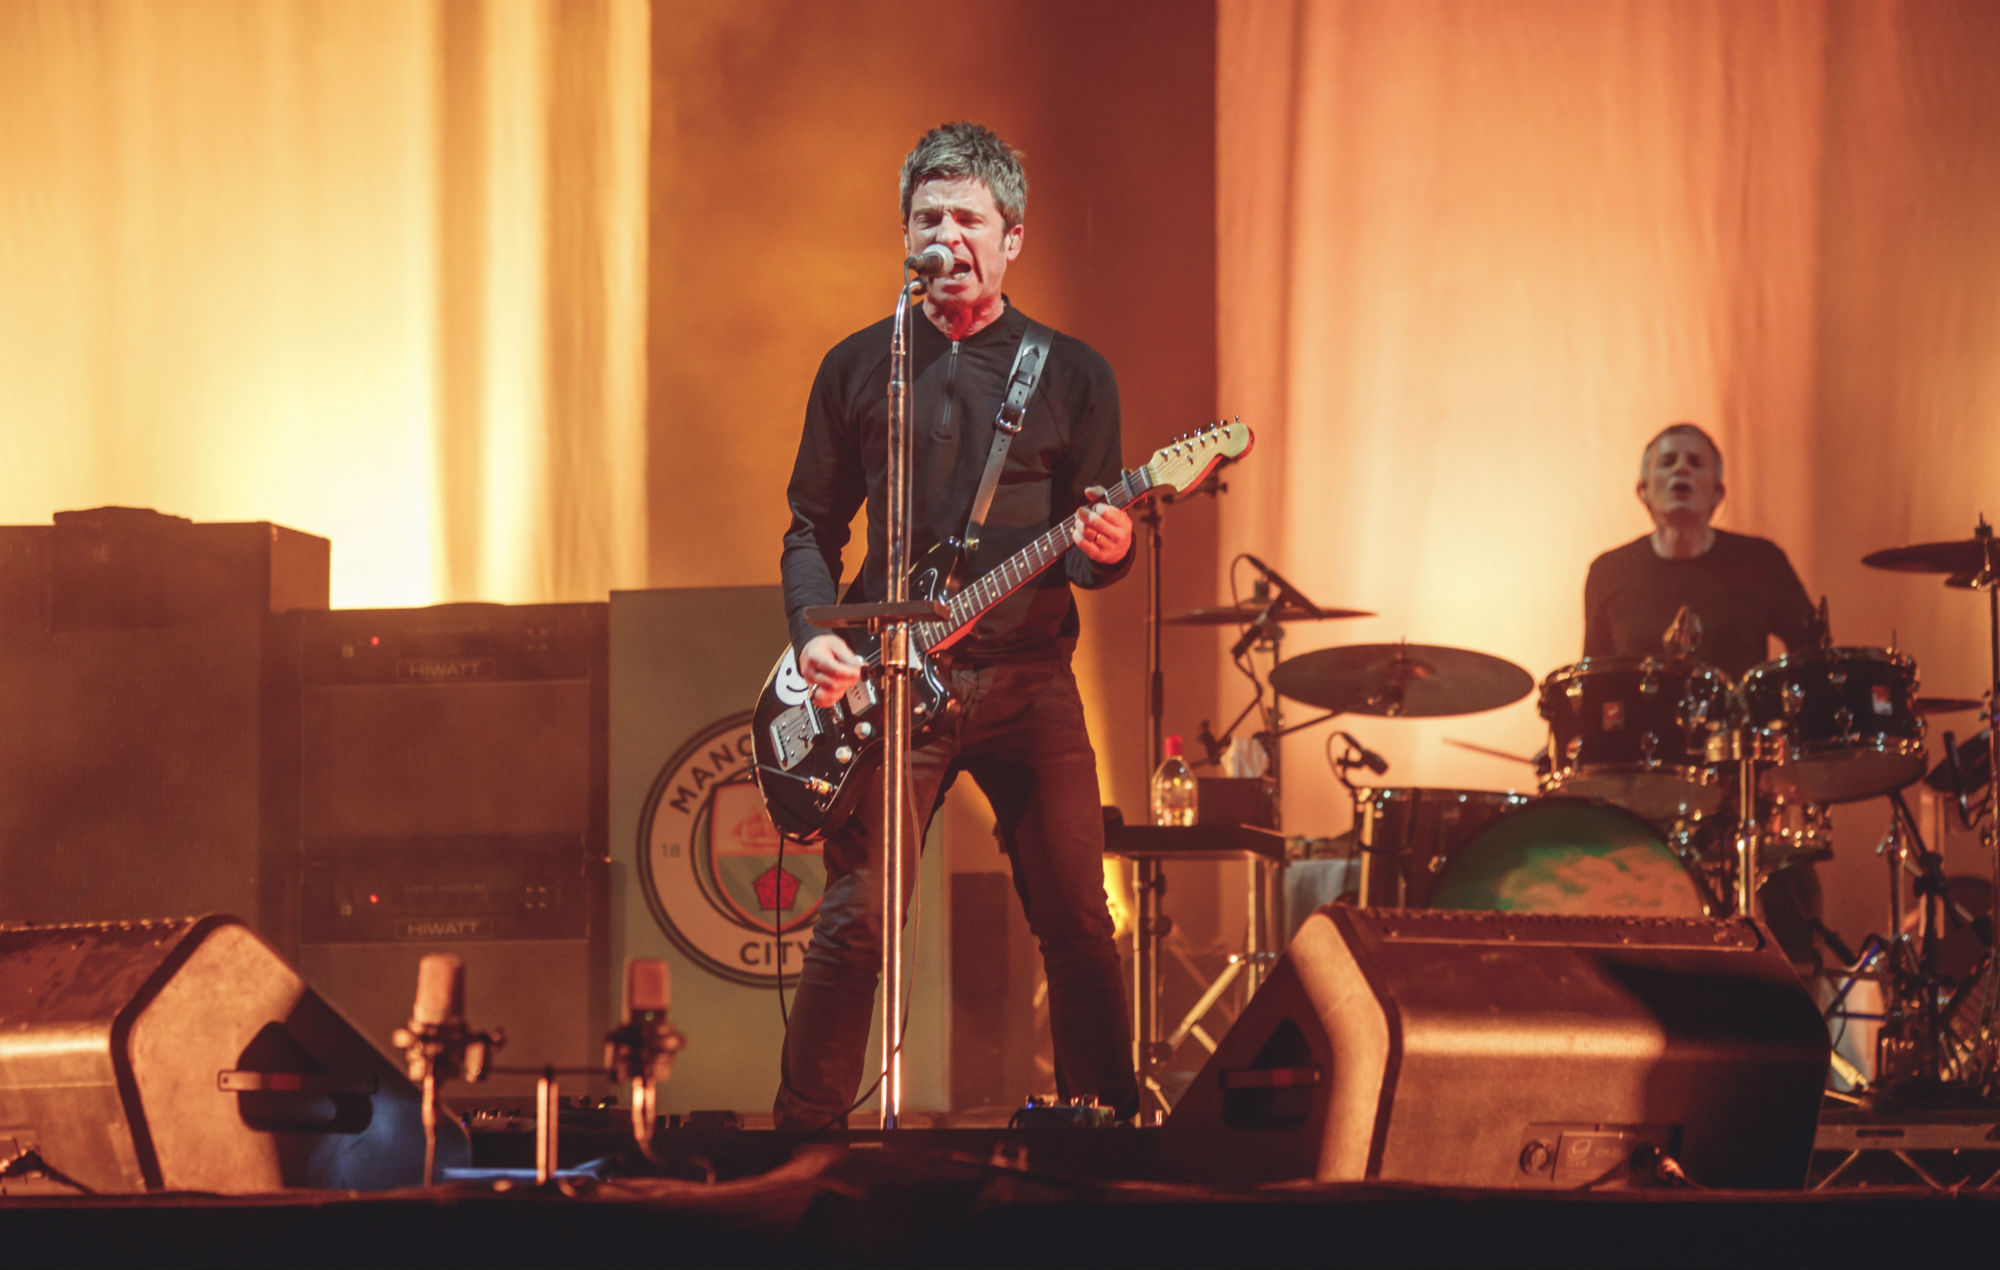 Noel Gallagher reveals he once lost a book of early Oasis lyrics